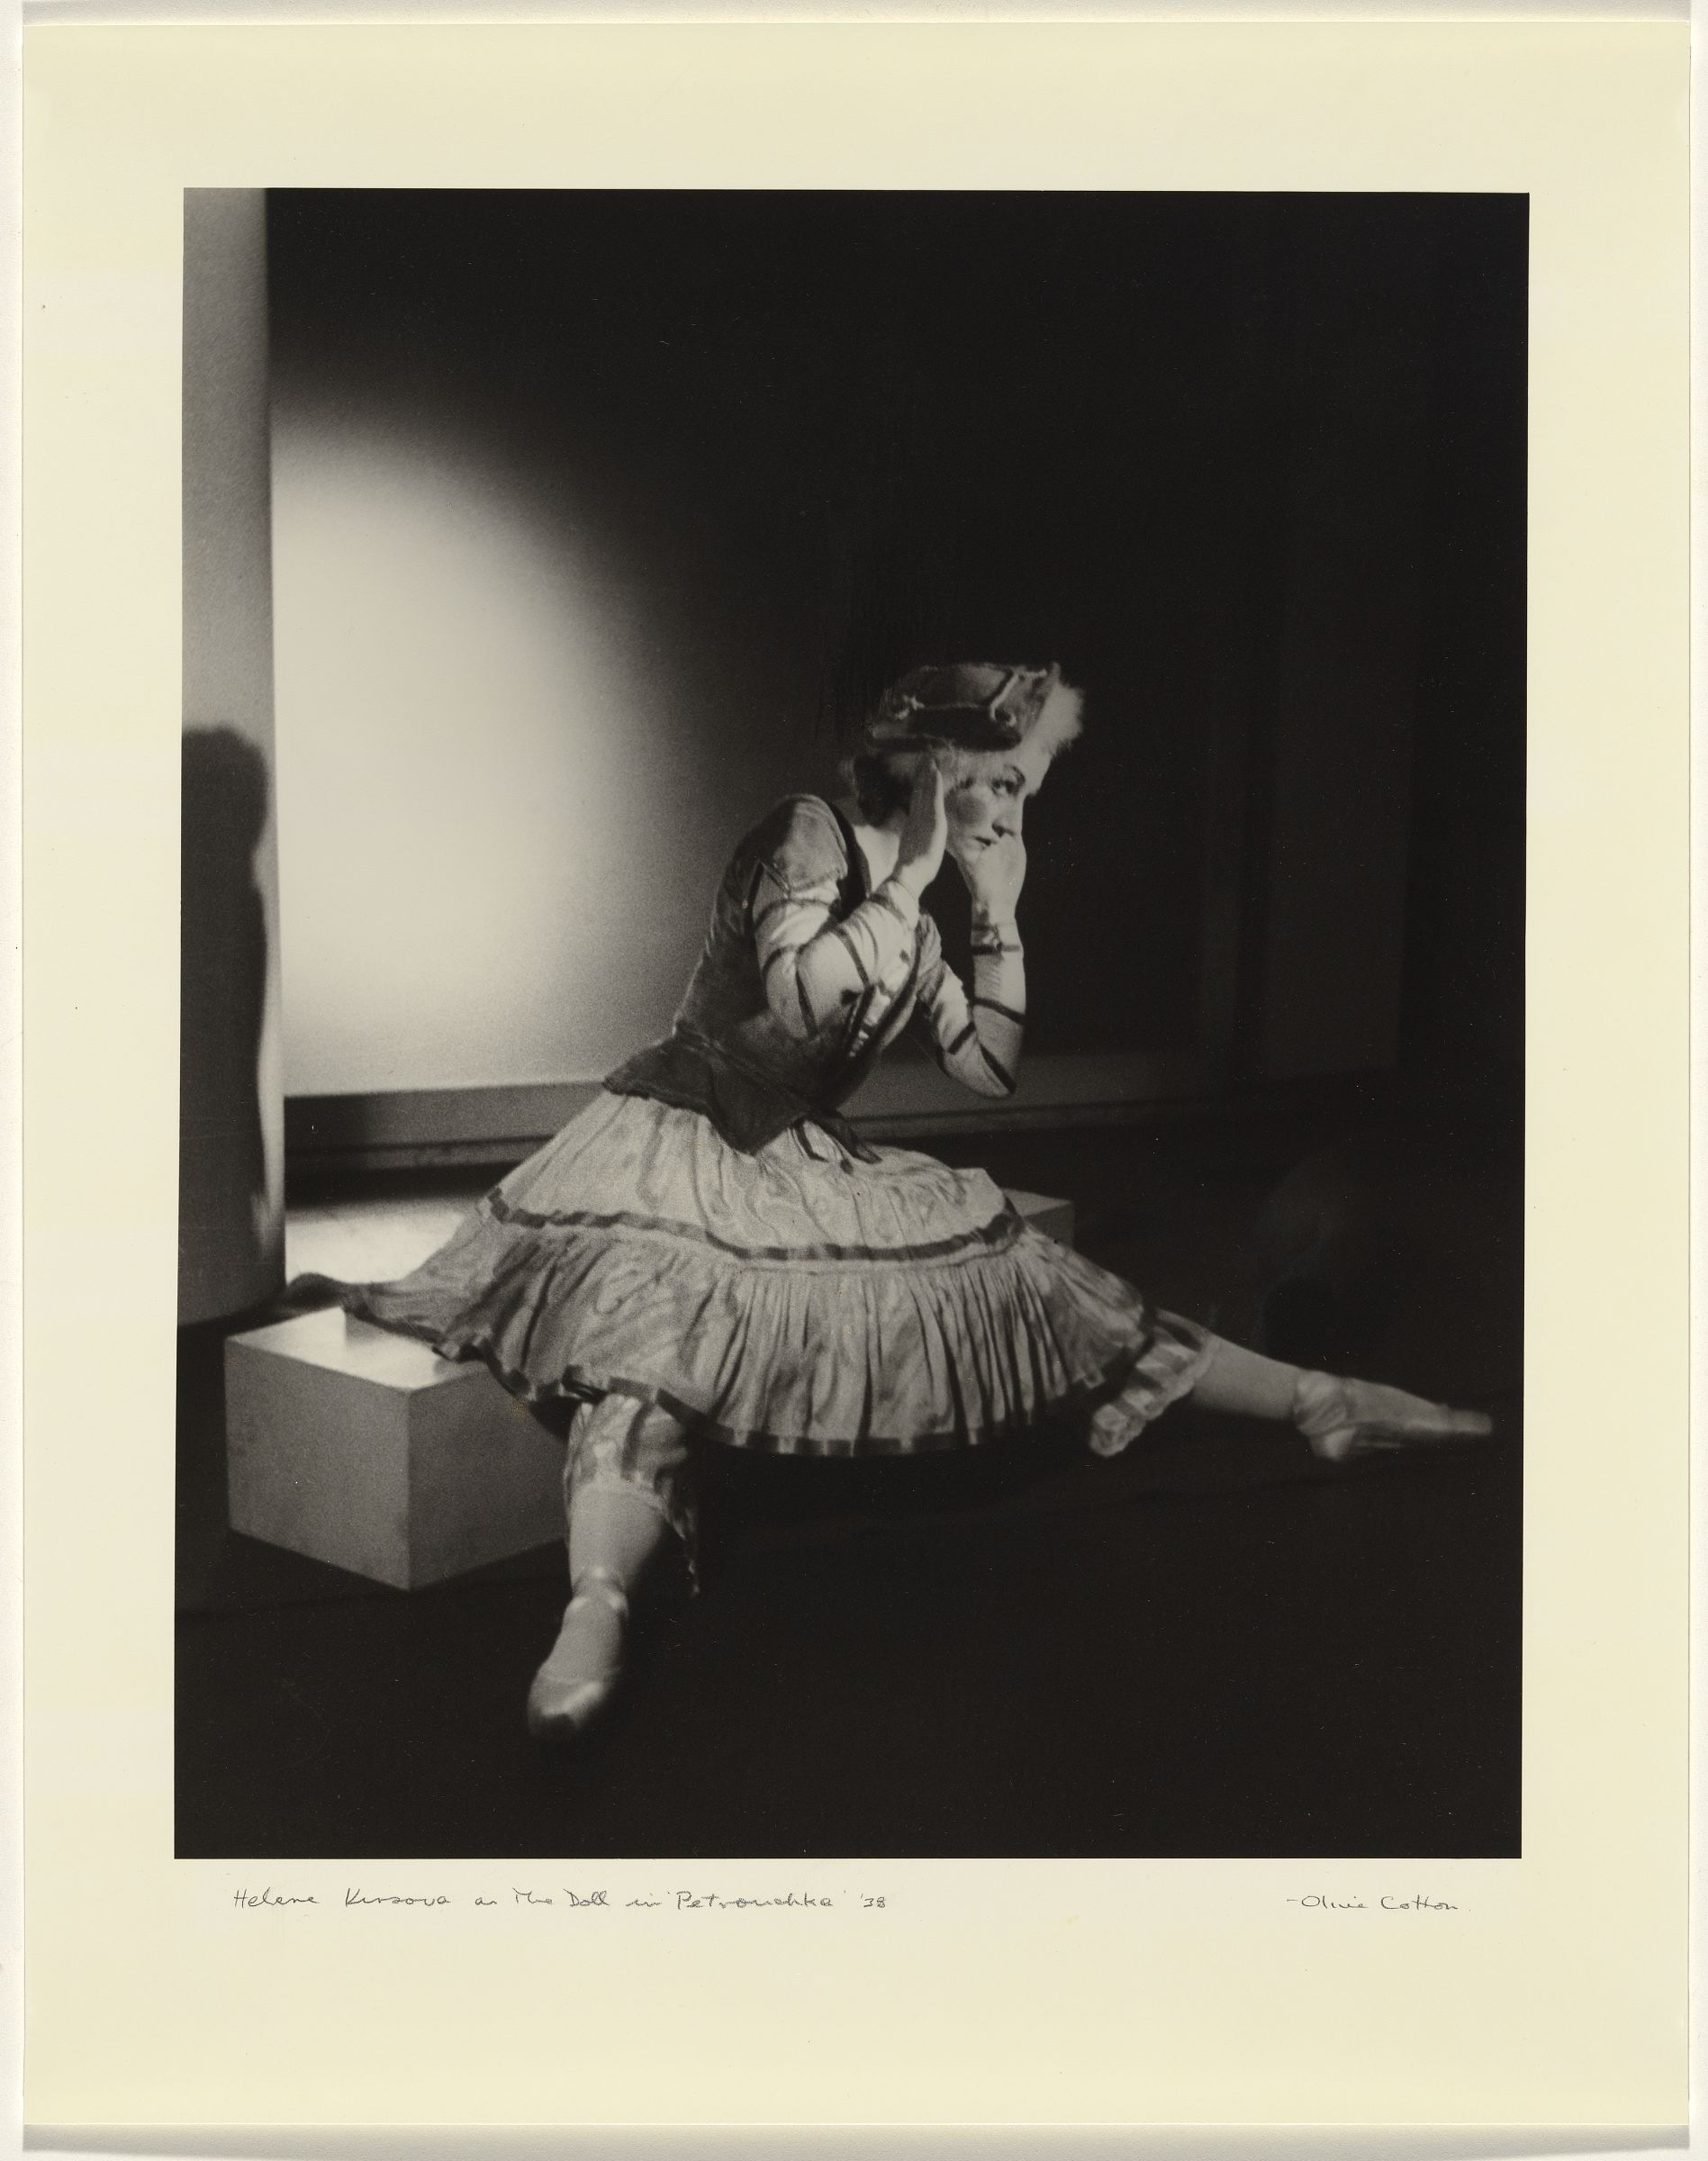 Helene Kirsova as The Doll in Petrouchka' 1938 prtd 1984